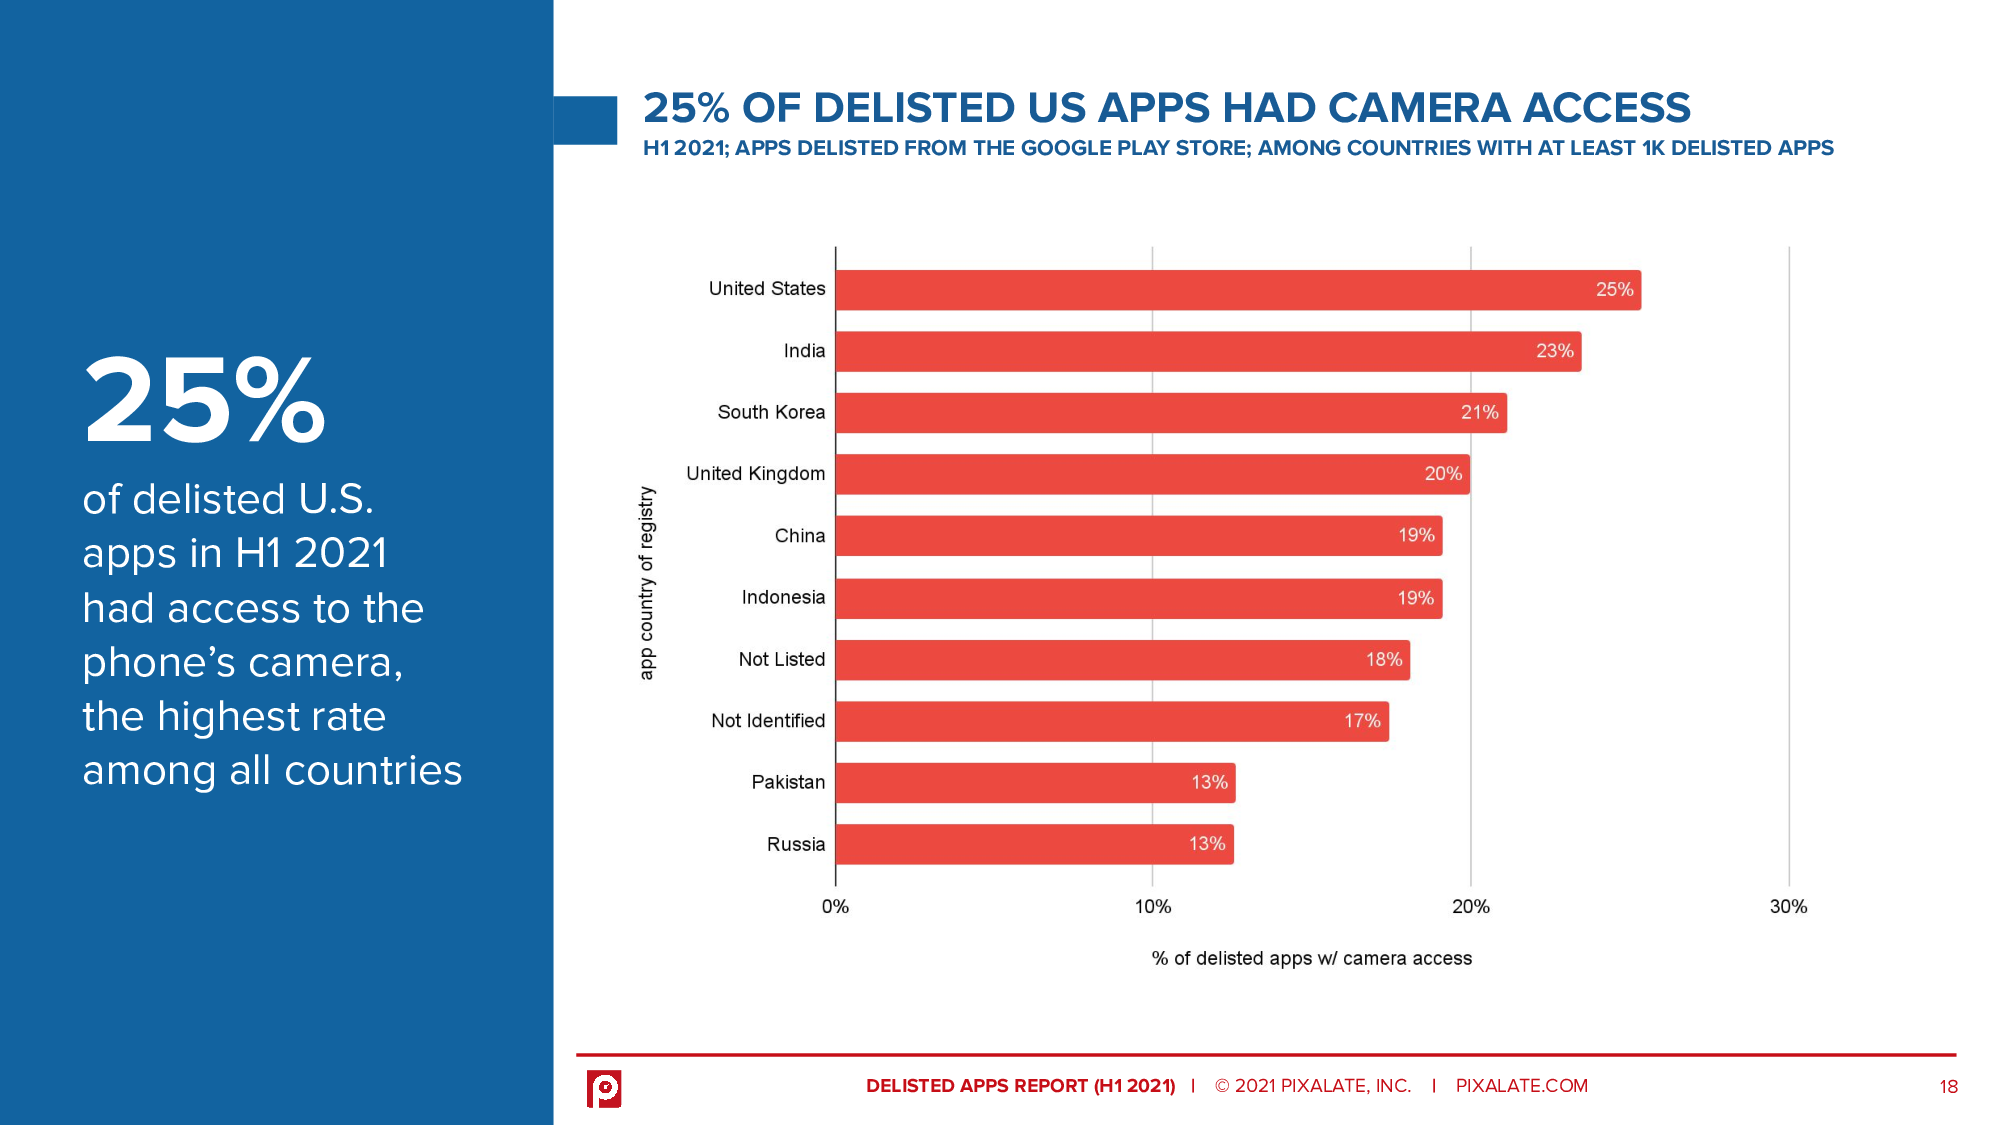 25% of delisted U.S. apps in H1 2021 had access to the phone's camera, the highest rate among all countries